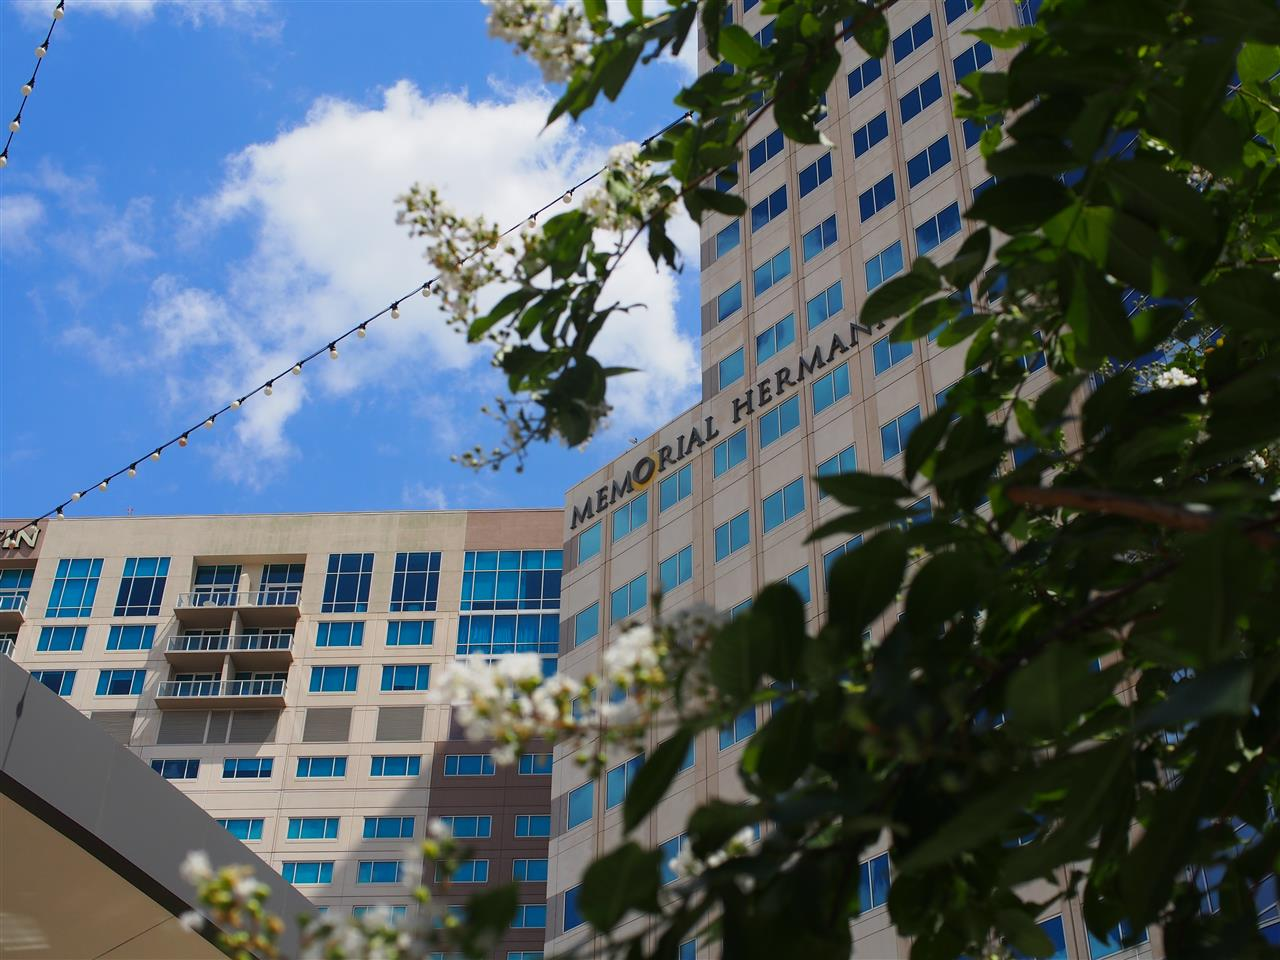 Located in the heart of west Houston, Memorial Hermann Memorial City Medical Center has been providing high quality, convenient healthcare to the residents of Greater and West Houston since 1971.